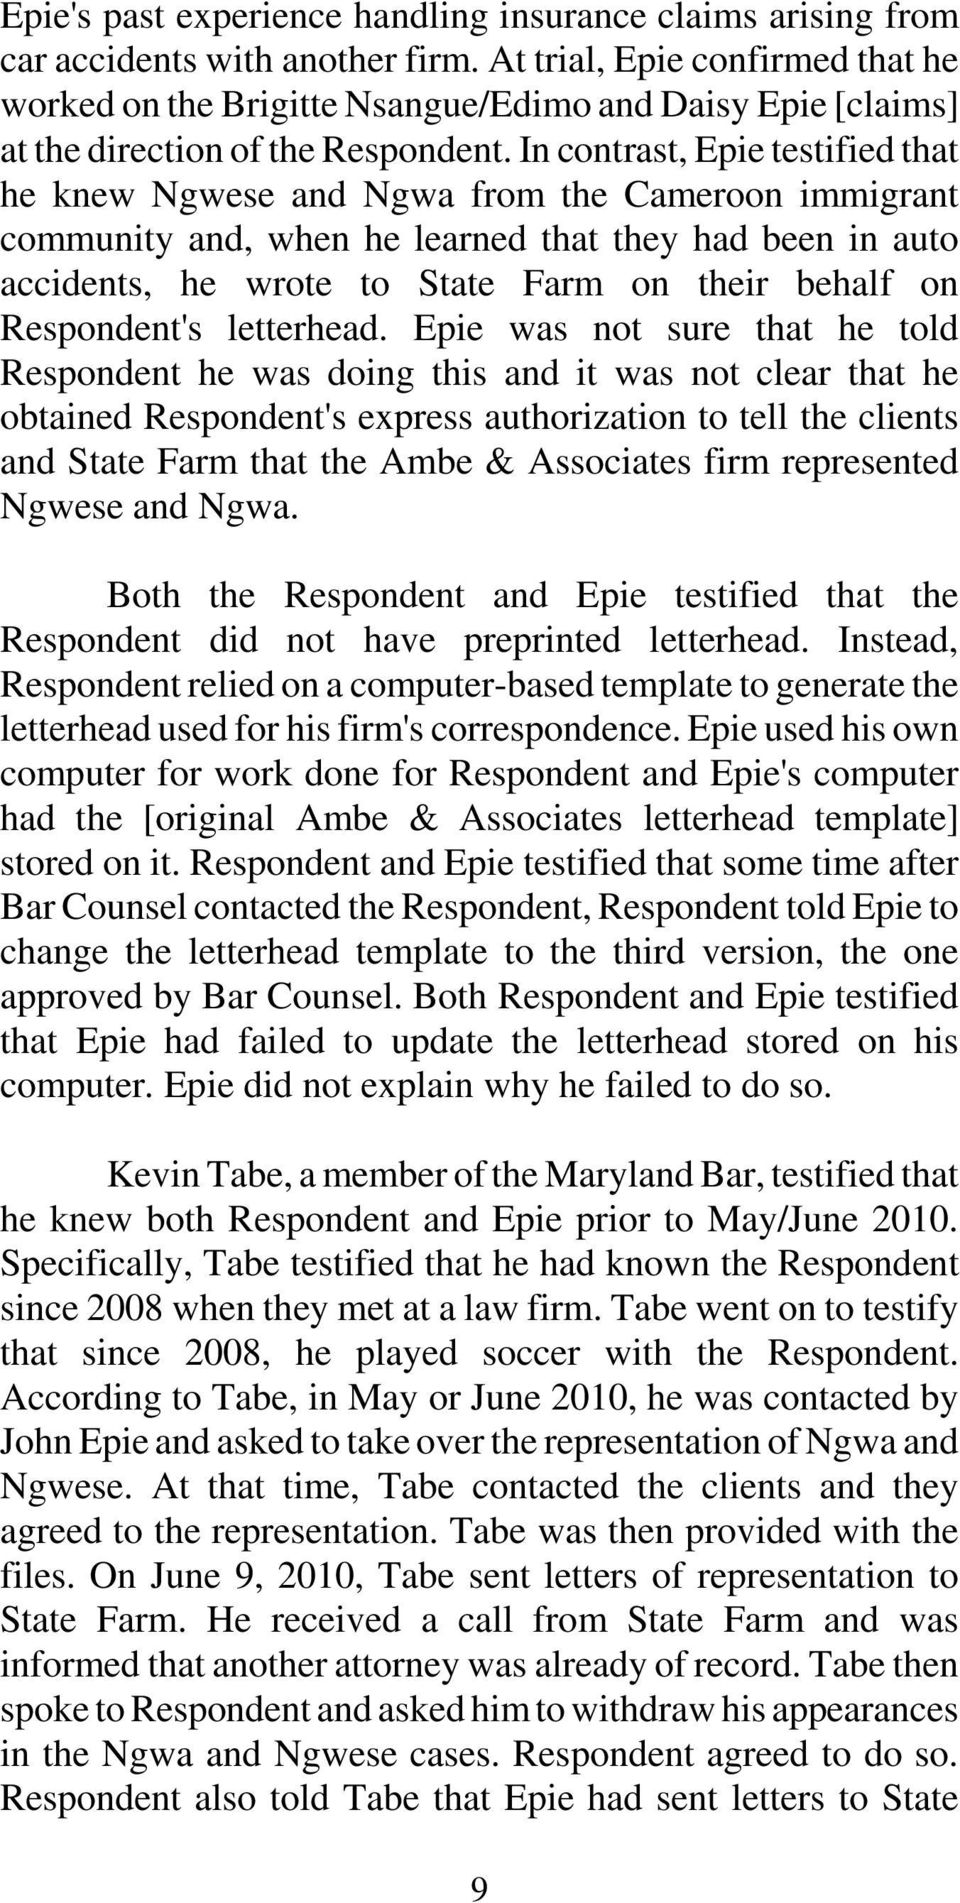 In contrast, Epie testified that he knew Ngwese and Ngwa from the Cameroon immigrant community and, when he learned that they had been in auto accidents, he wrote to State Farm on their behalf on